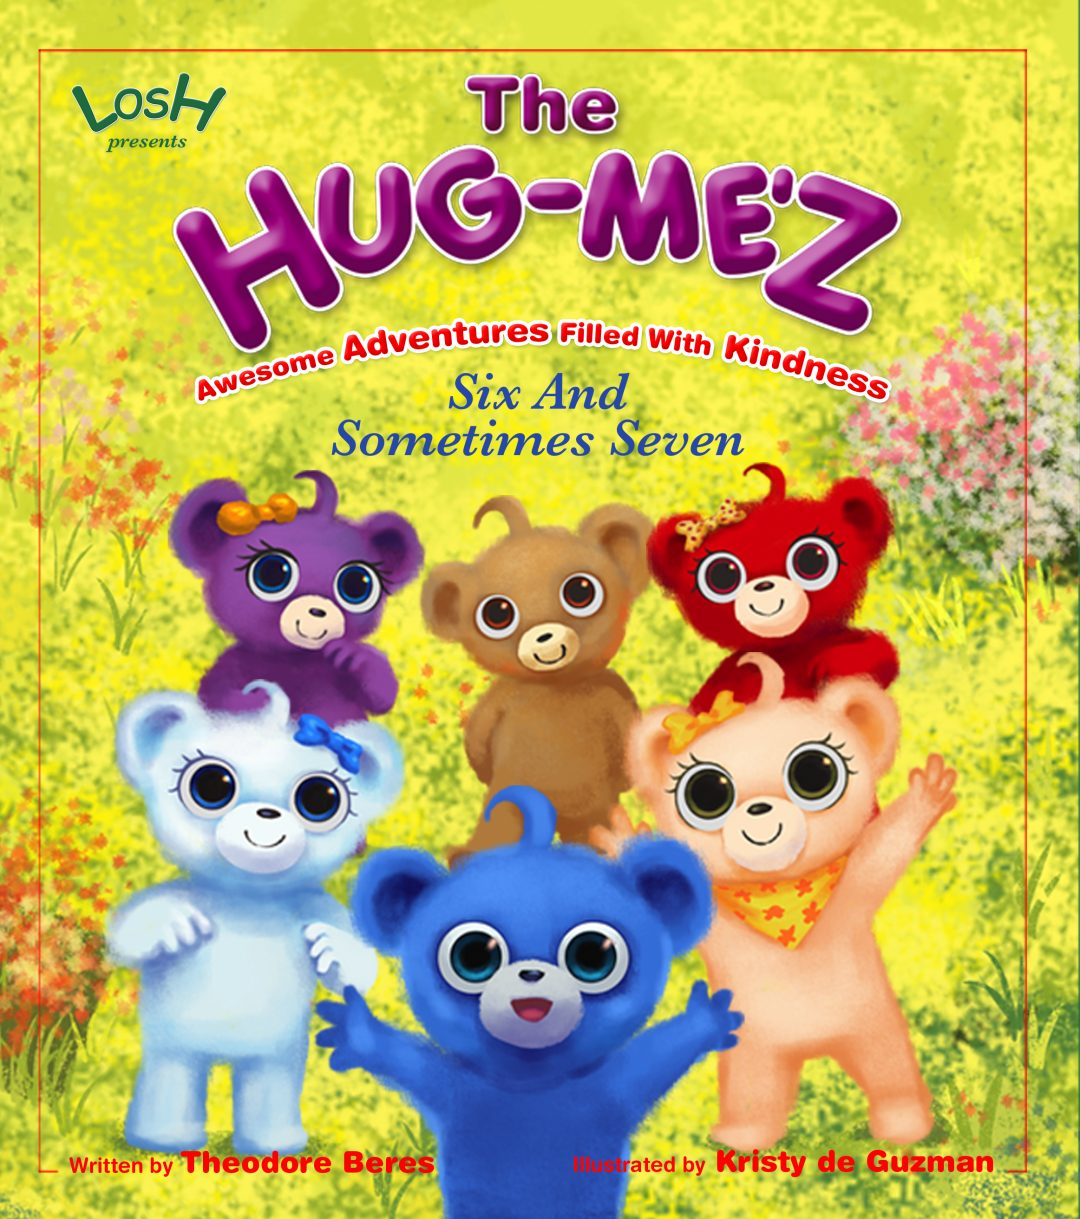 The Hug-Me'z Six and Sometimes Seven Book Cover